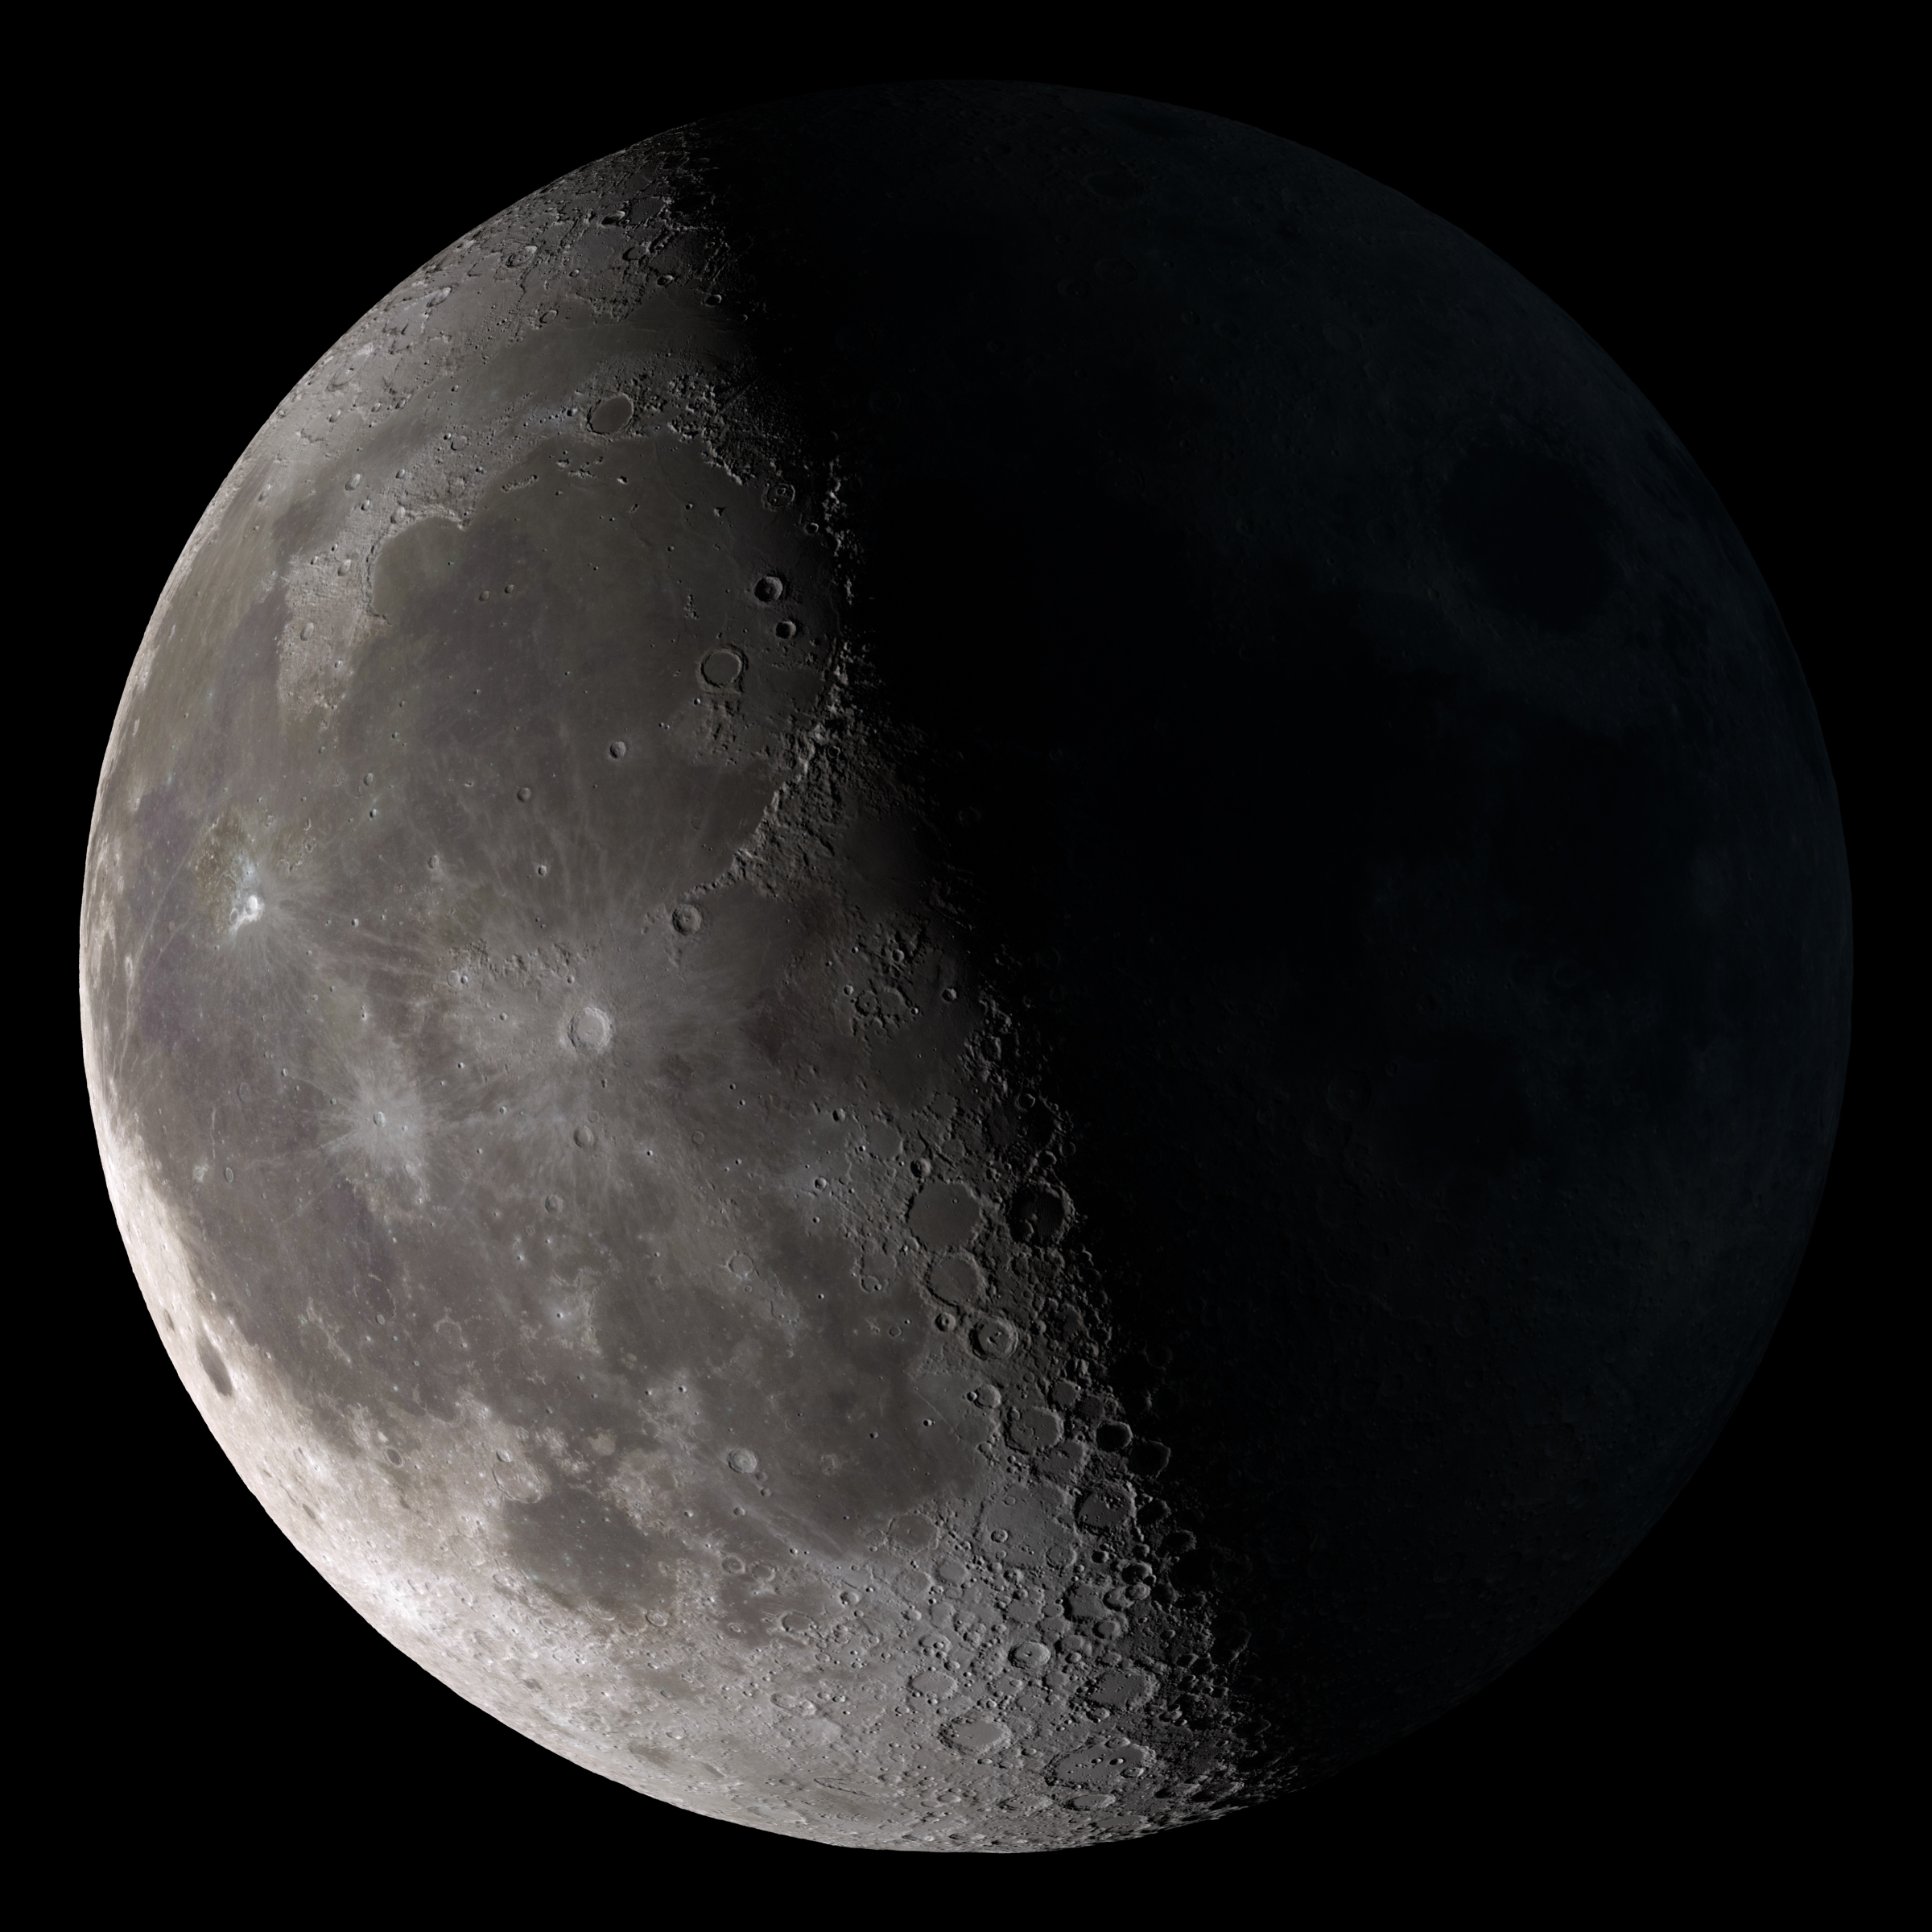 The Moon in its Third Quarter Phase